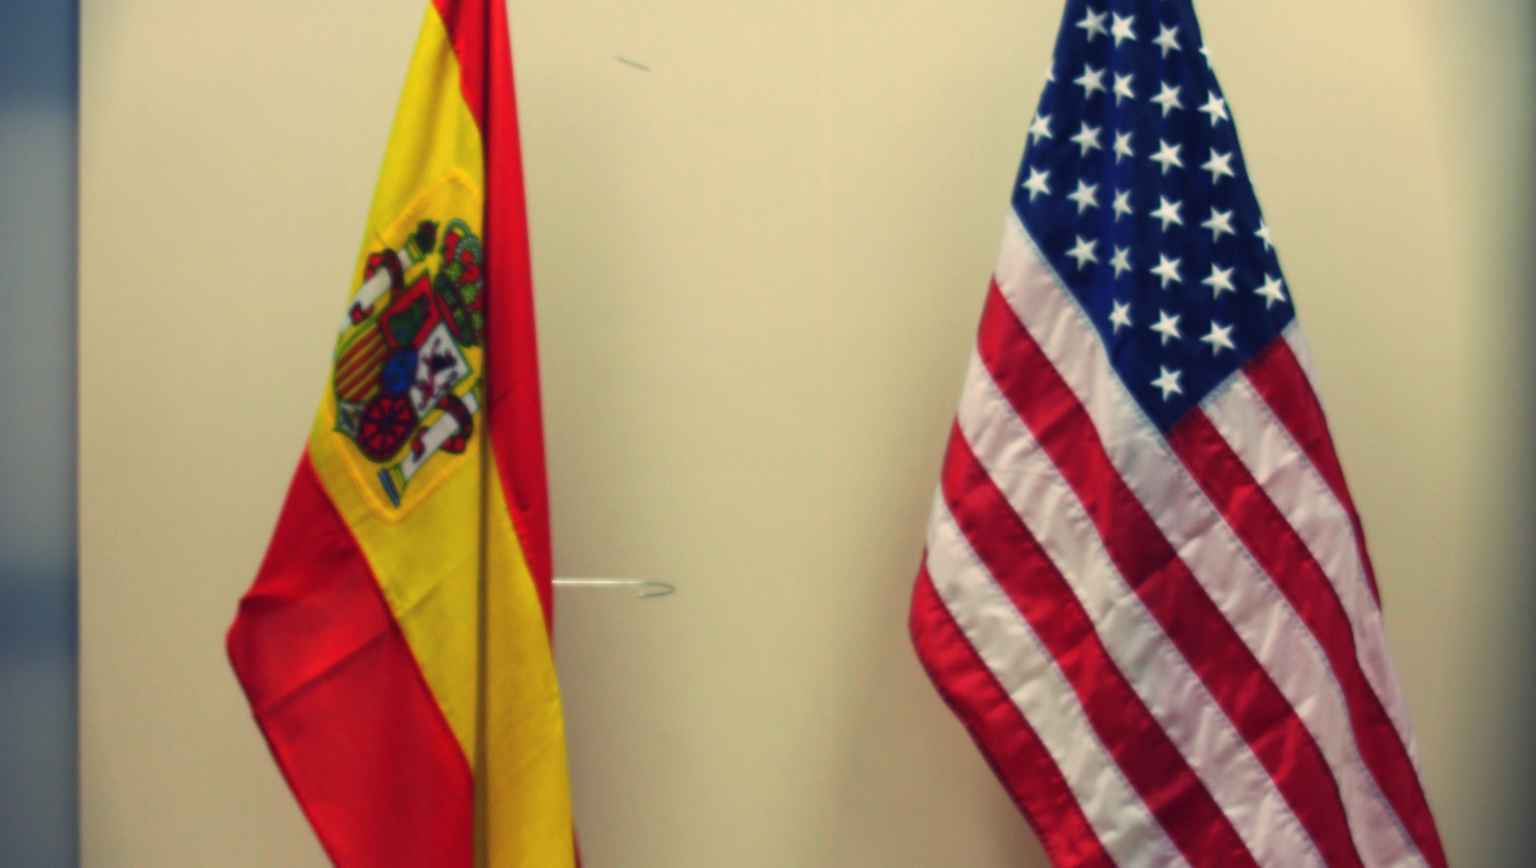 EducationUSA - Fulbright Madrid - flags